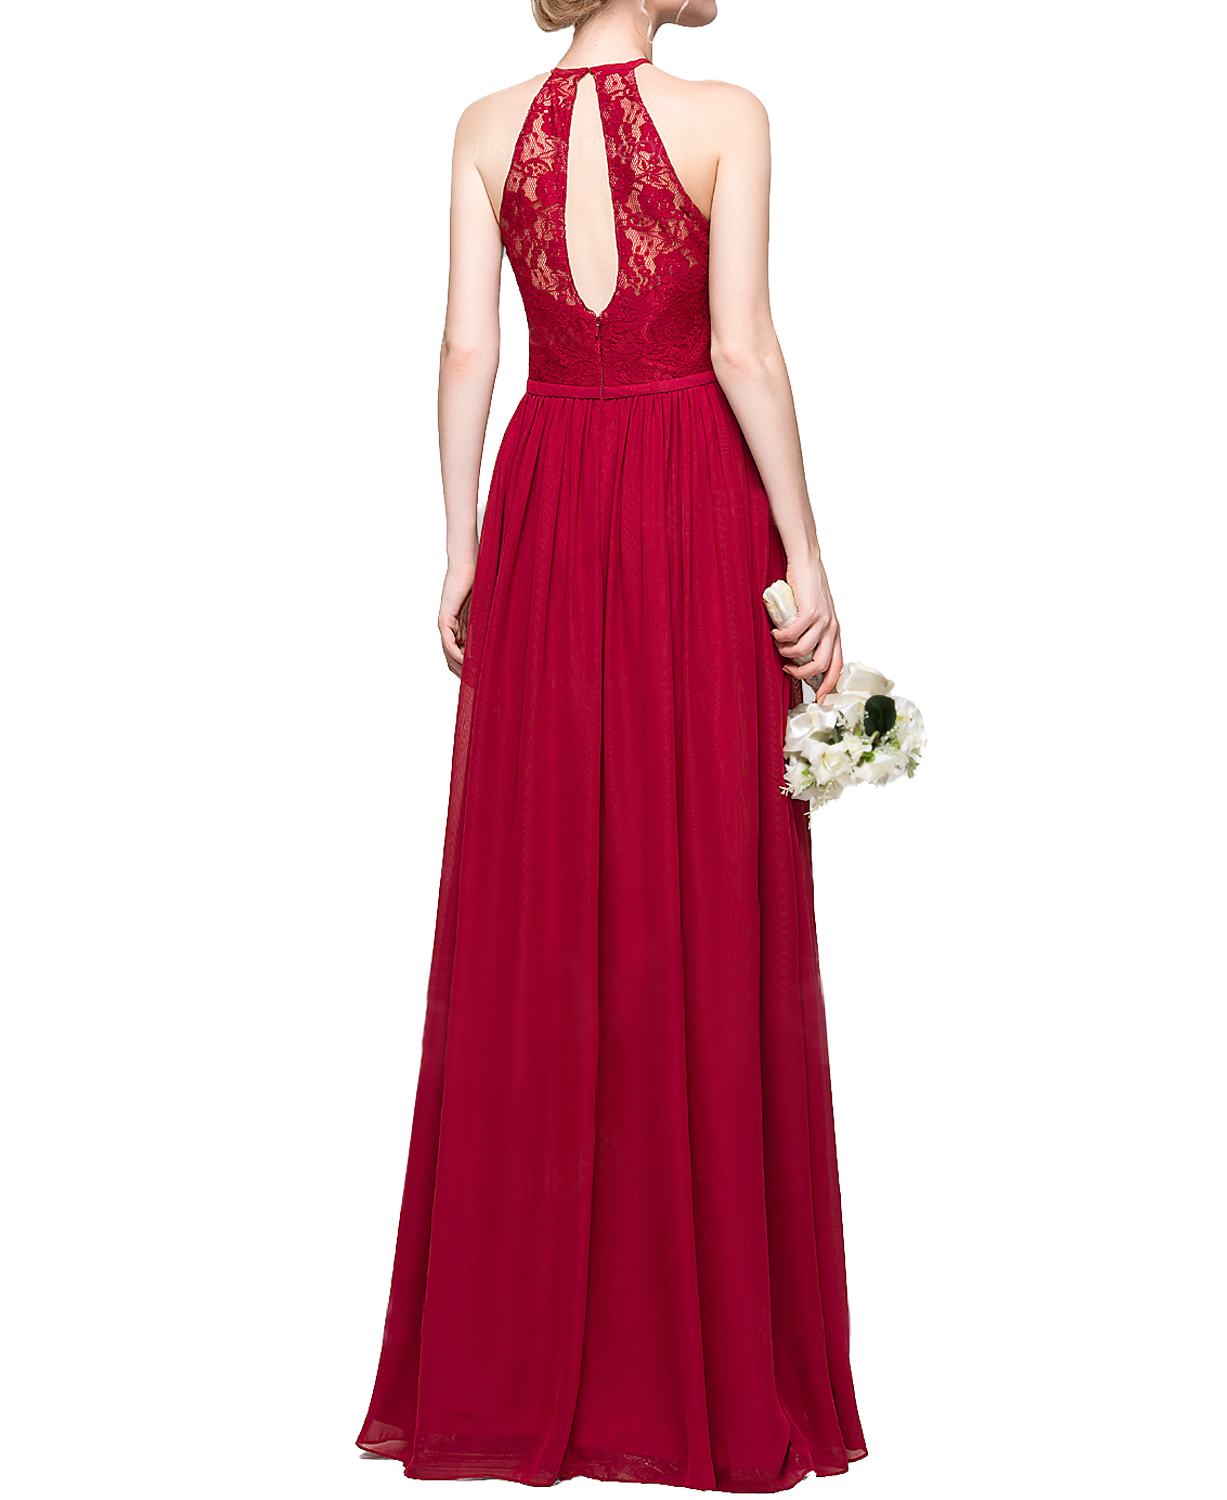 F411 Halter Lace Top Prom Gowns,Burgundy Long Chiffon prom Gowns ...